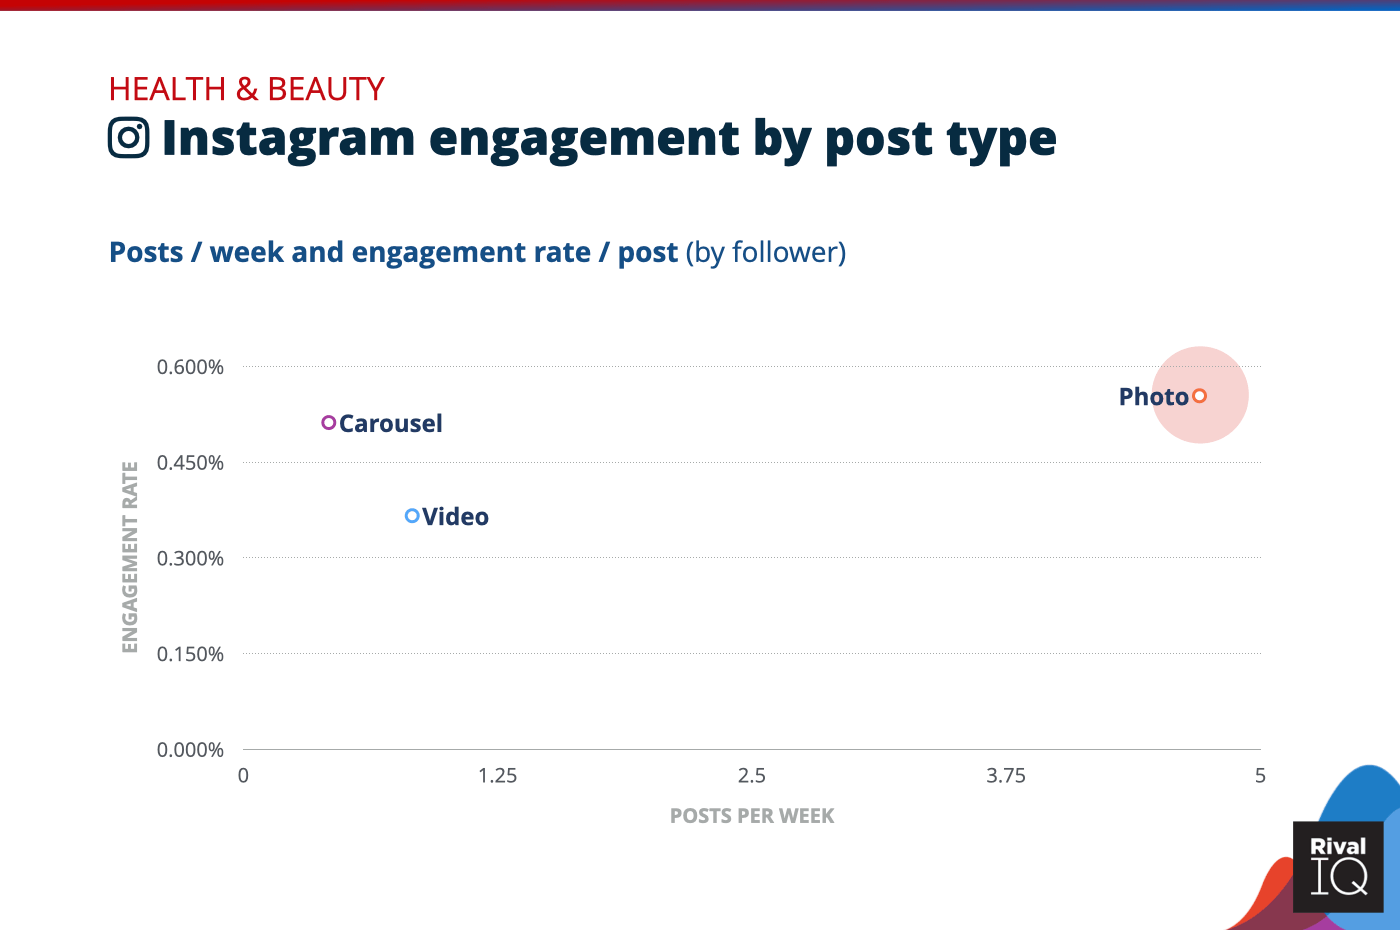 Chart of Instagram posts per week and engagement rate by post type, Health & Beauty